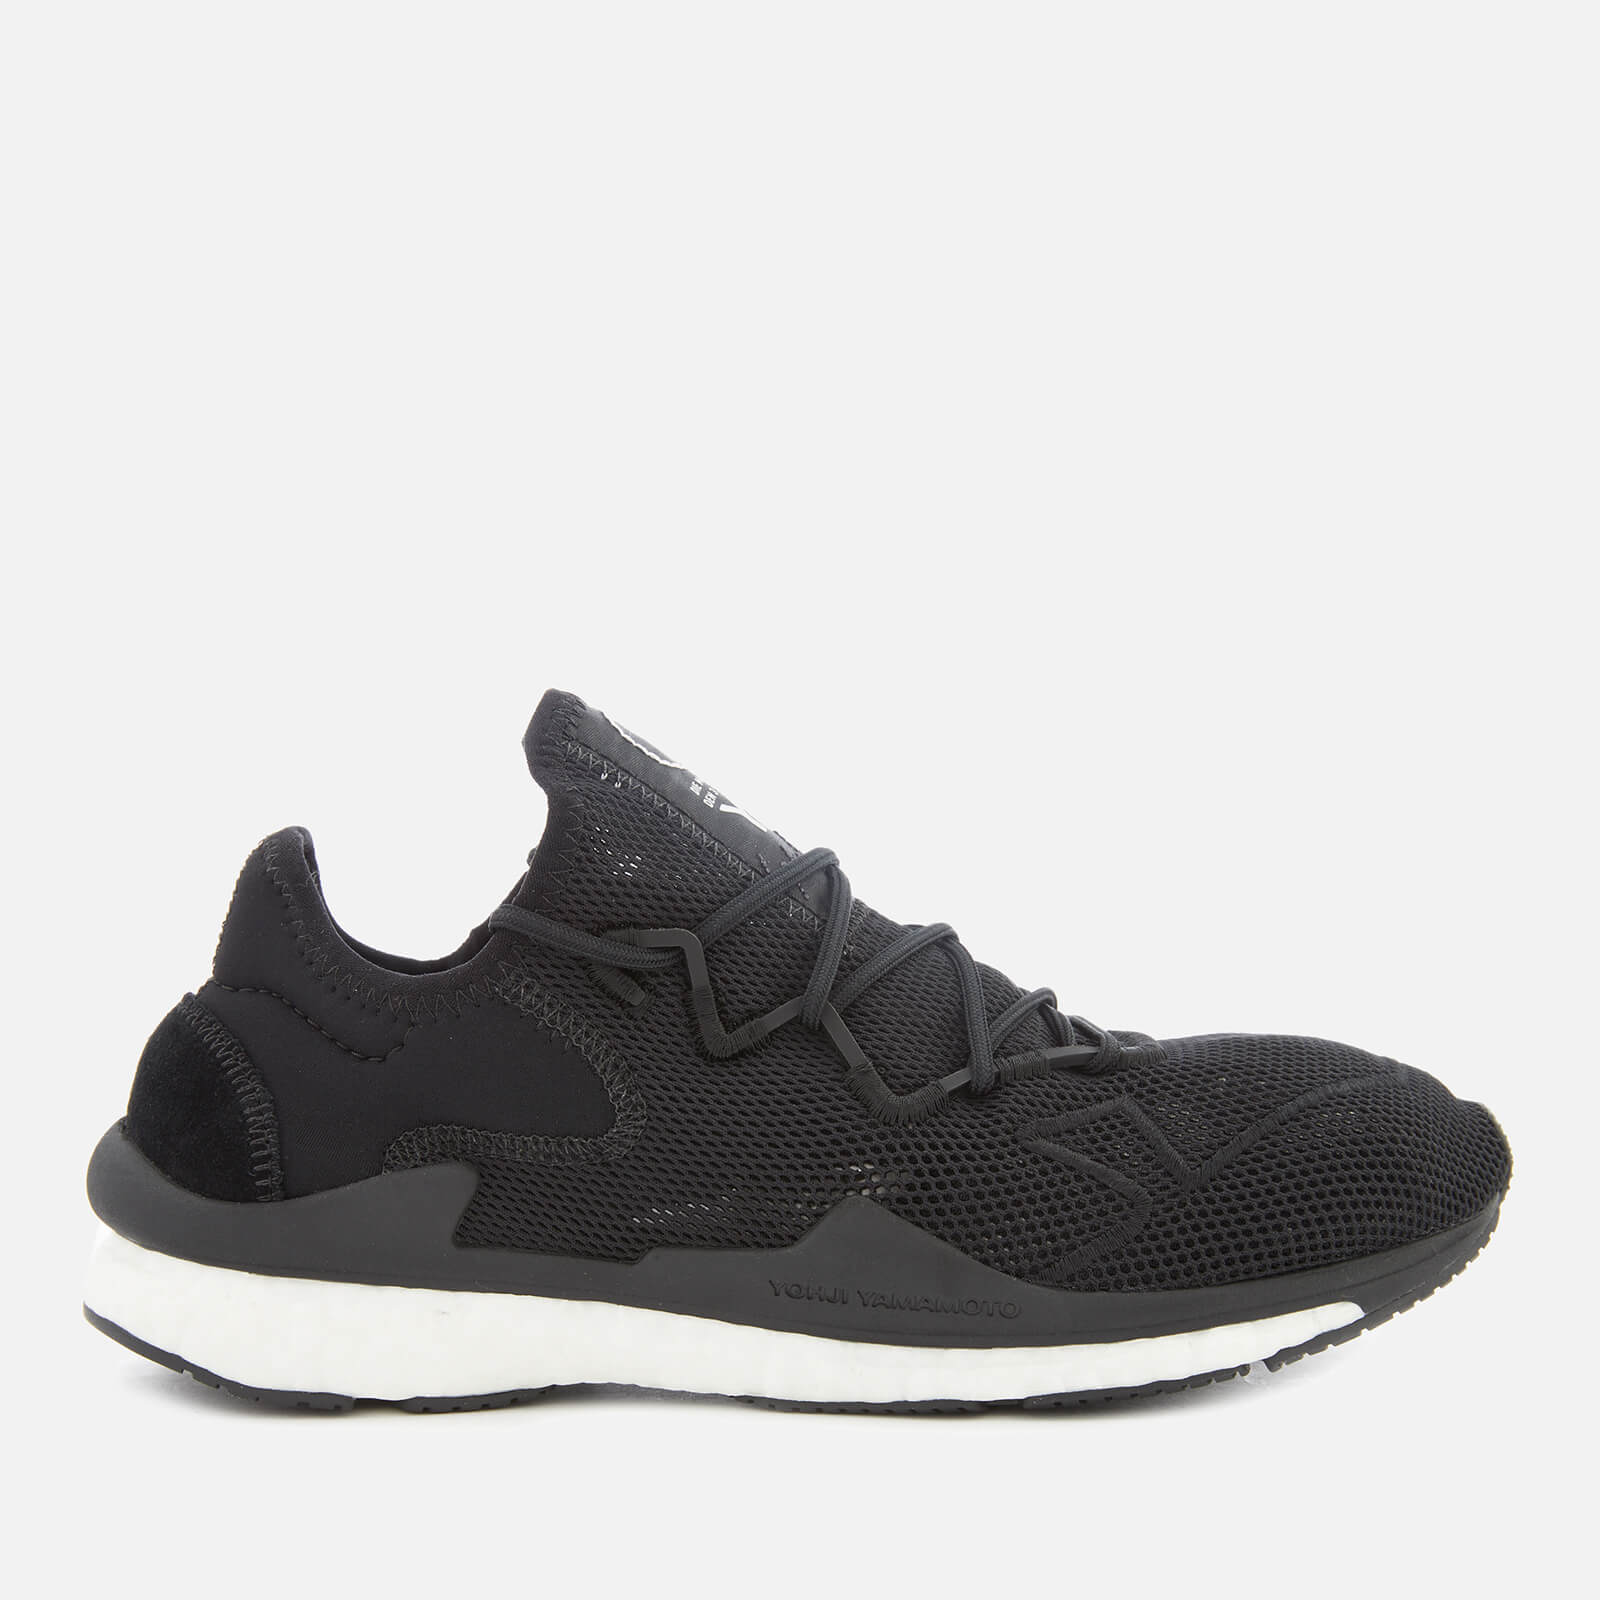 3923f3698 Y-3 Men s Adizero Runner Trainers - Black - Y3 - Free UK Delivery over £50